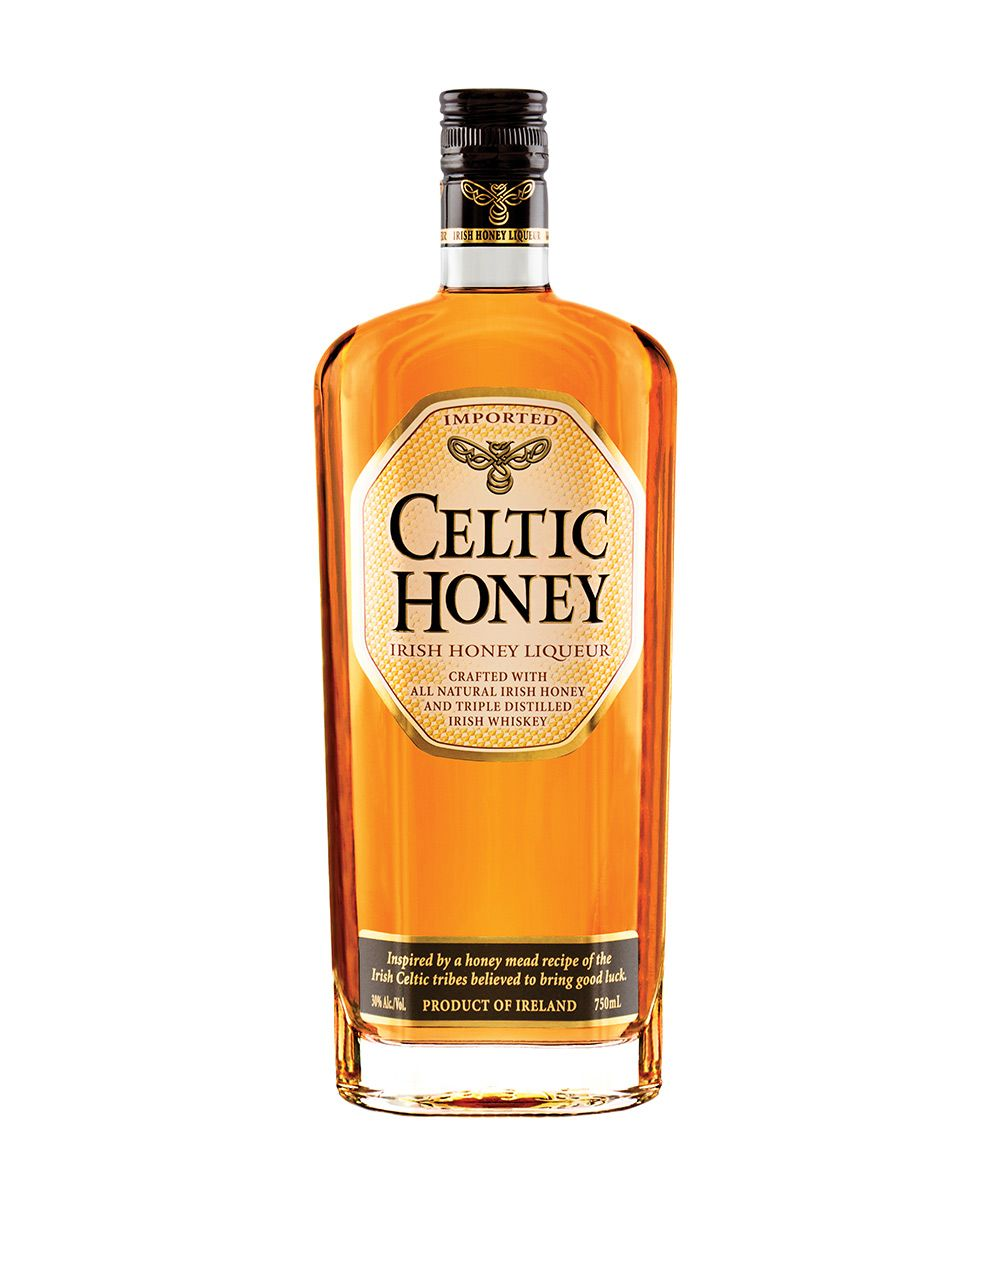 Celtic Honey Liqueur | Buy Online or Send as a Gift | ReserveBar